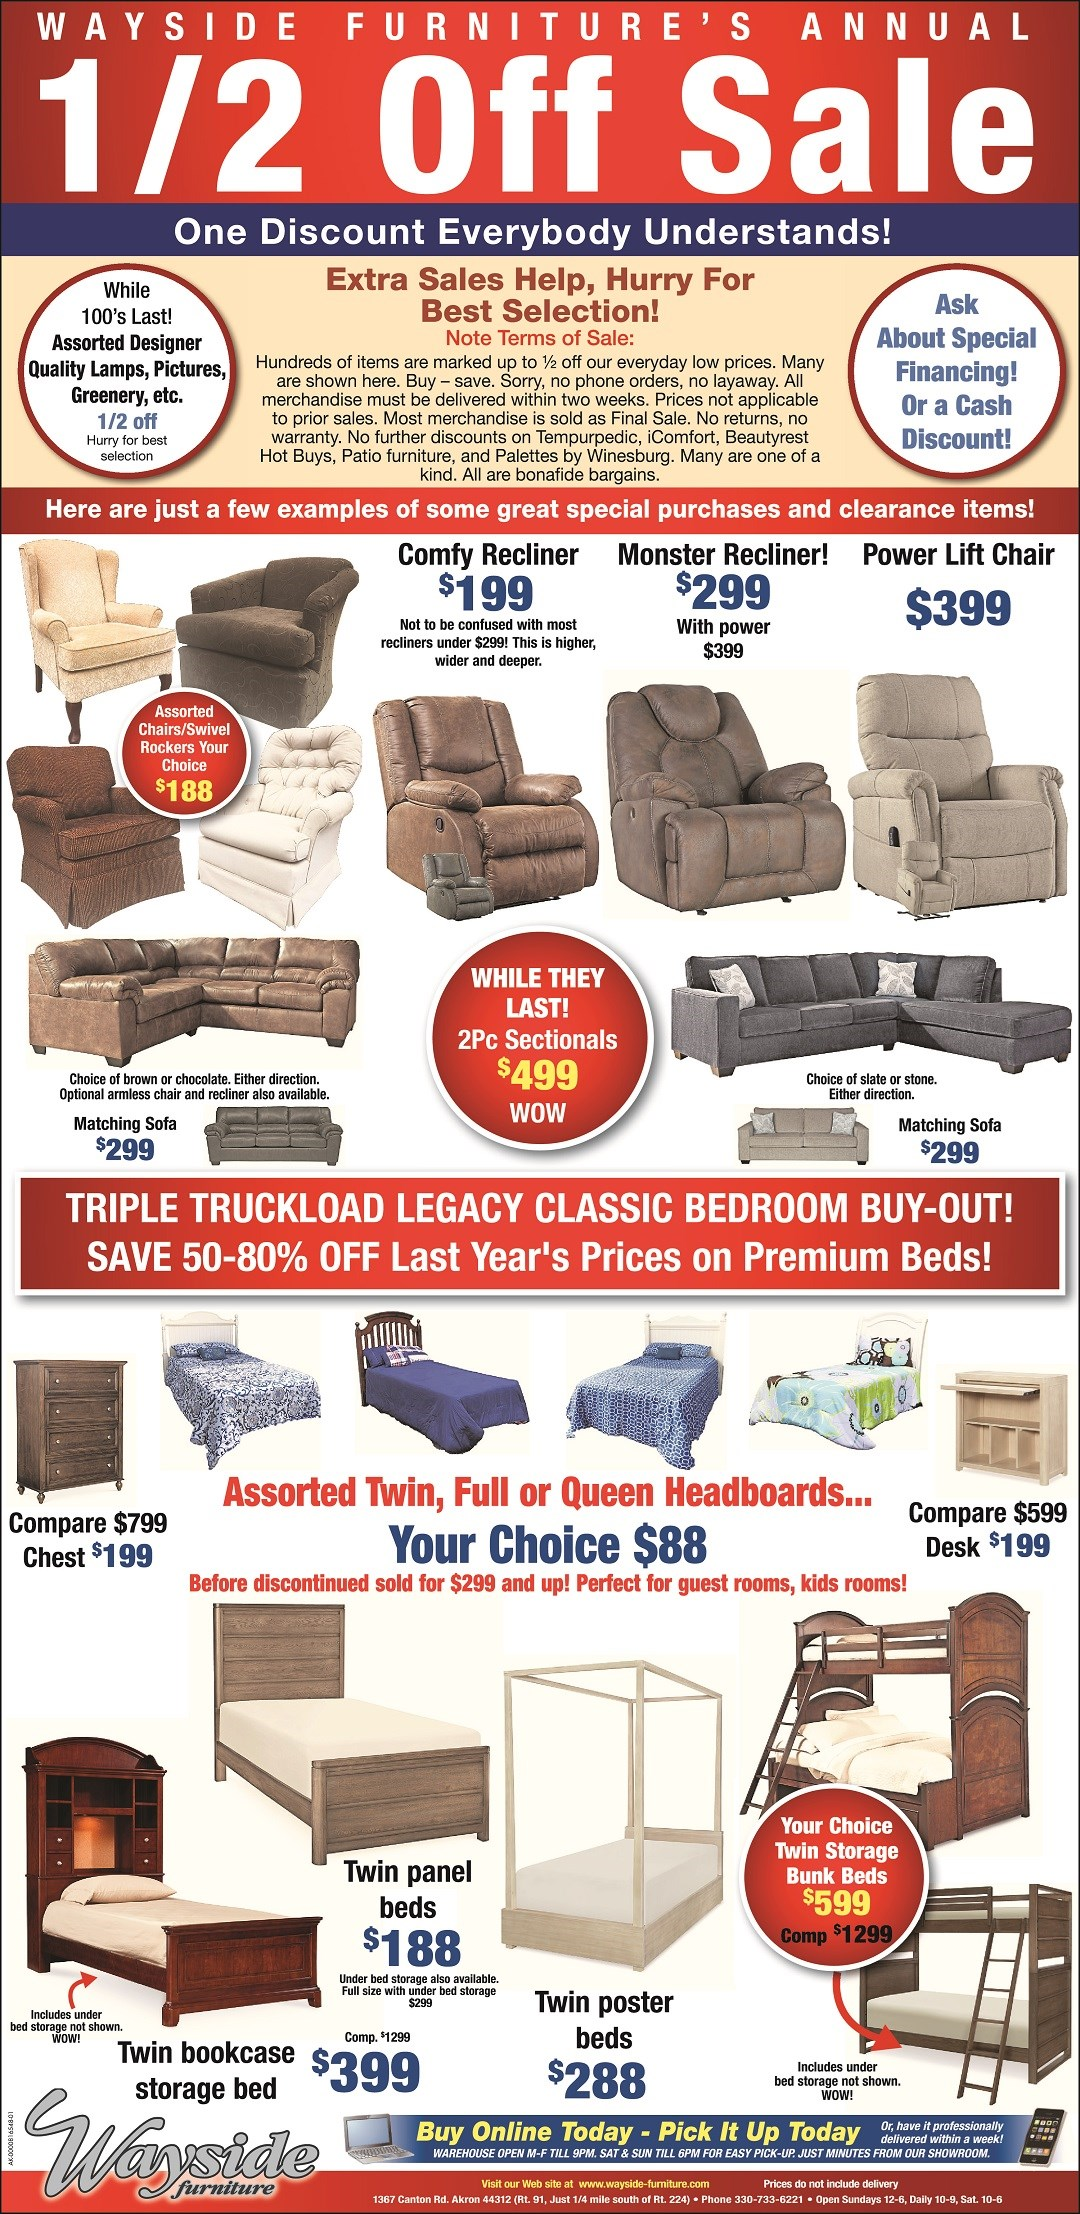 Wayside Furniture's Annual half off sale on hundreds of items storewide